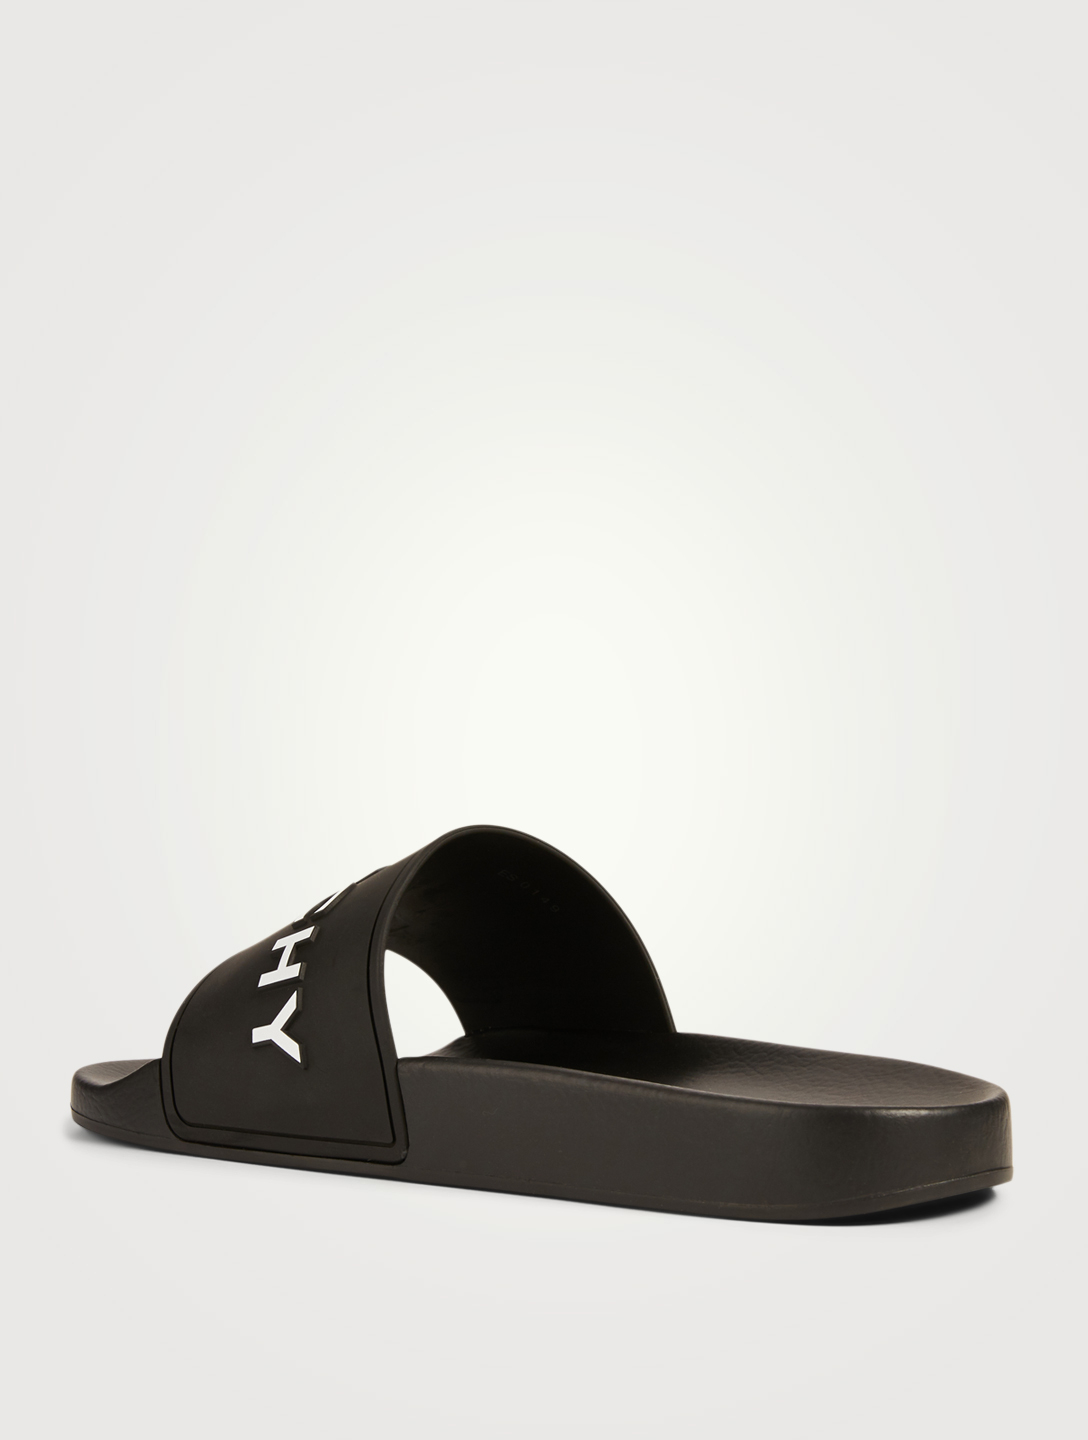 GIVENCHY Logo Slide Sandals Men's Black